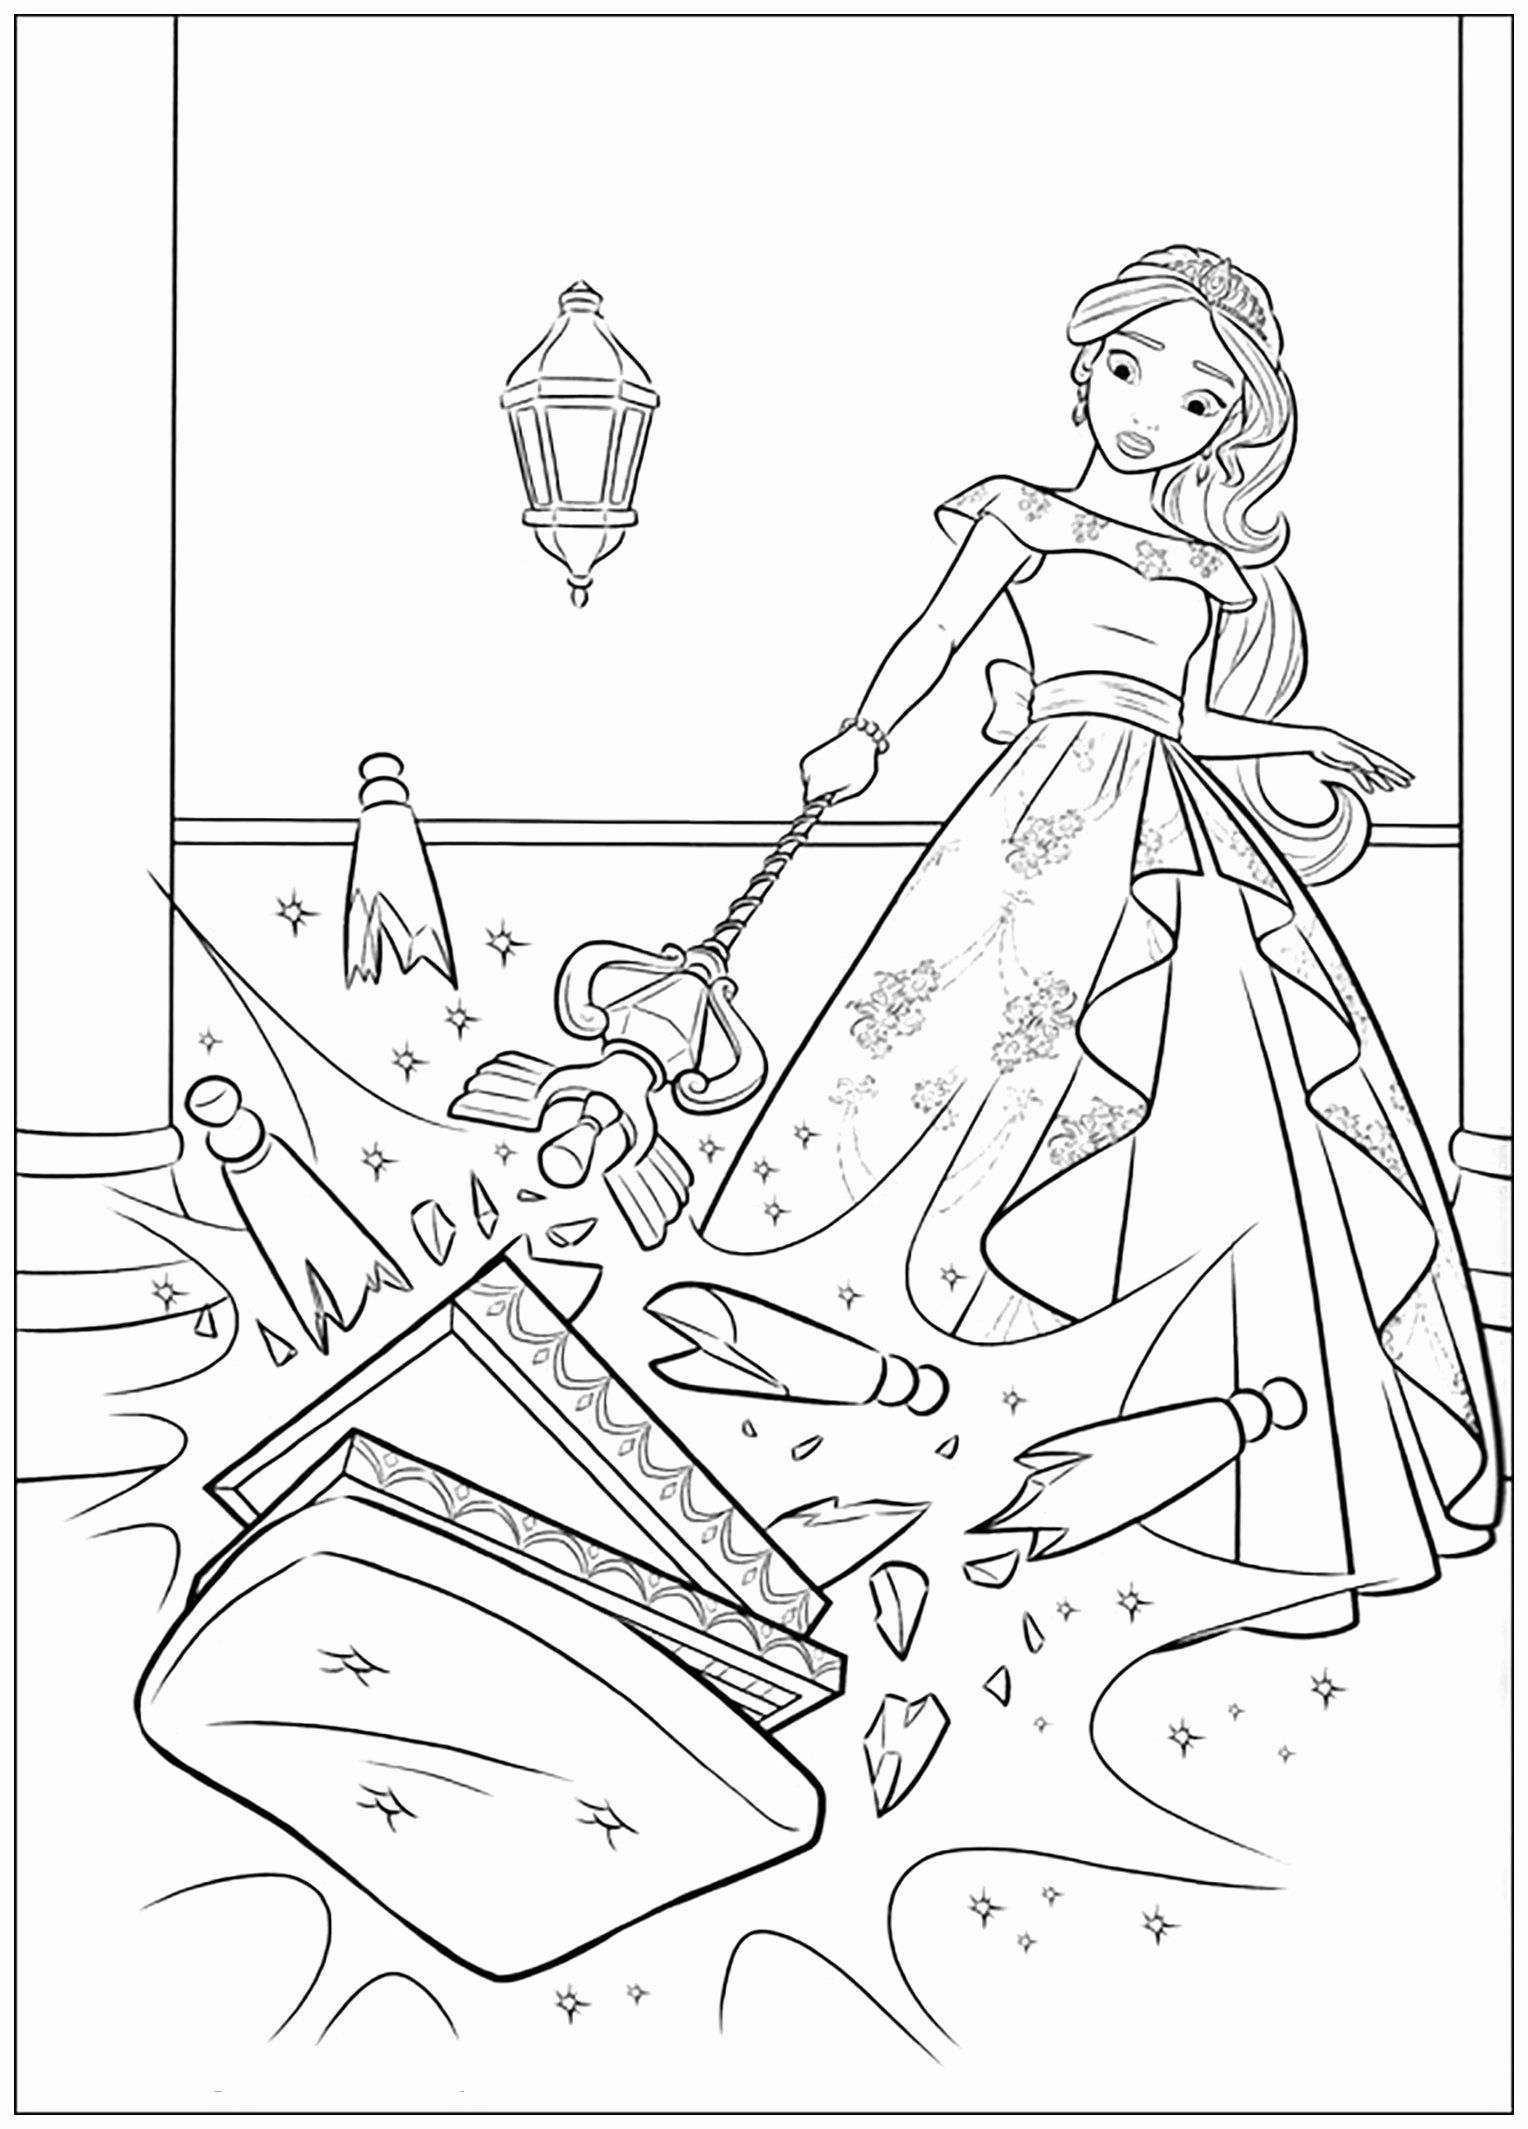 Elena Of Avalor Coloring Book Lovely Elena Avalor Free To Color For Children Elena Ava Disney Princess Coloring Pages Princess Coloring Pages Coloring For Kids